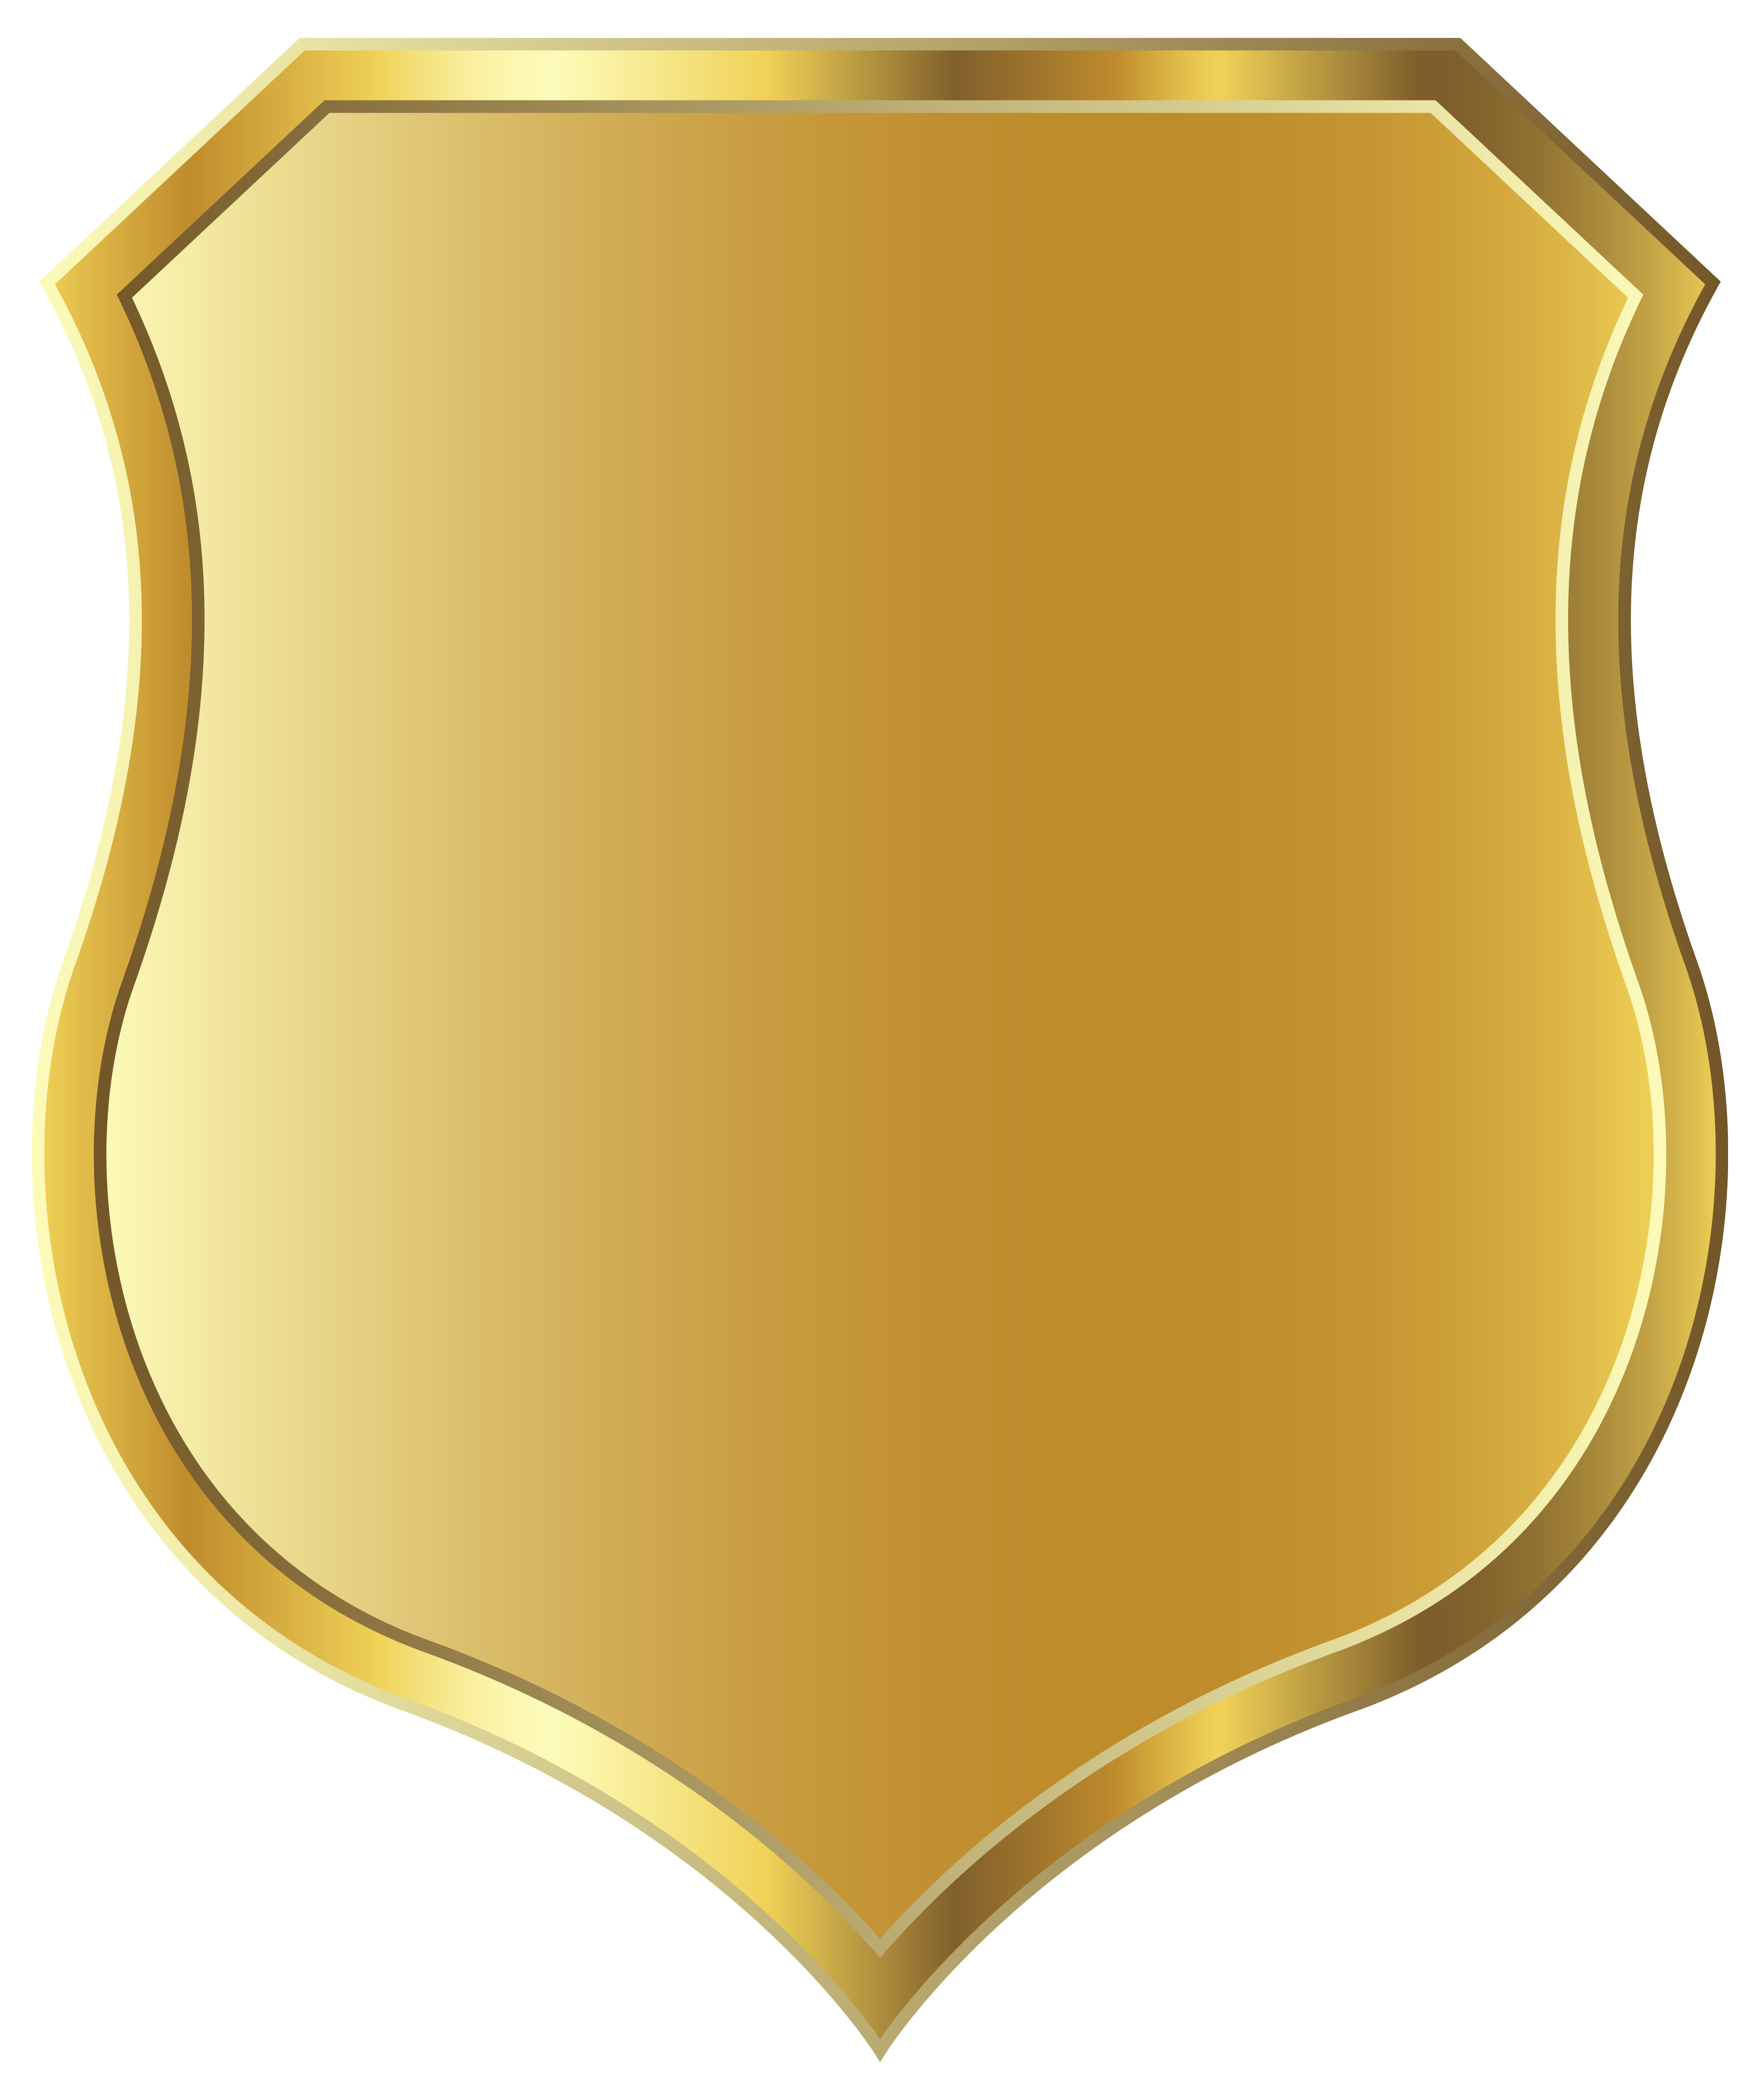 Golden Badge Template Png Clipart Image Gallery Yopriceville High Quality Images And Transparent Png Free Clipart Badge Template Clip Art Badge